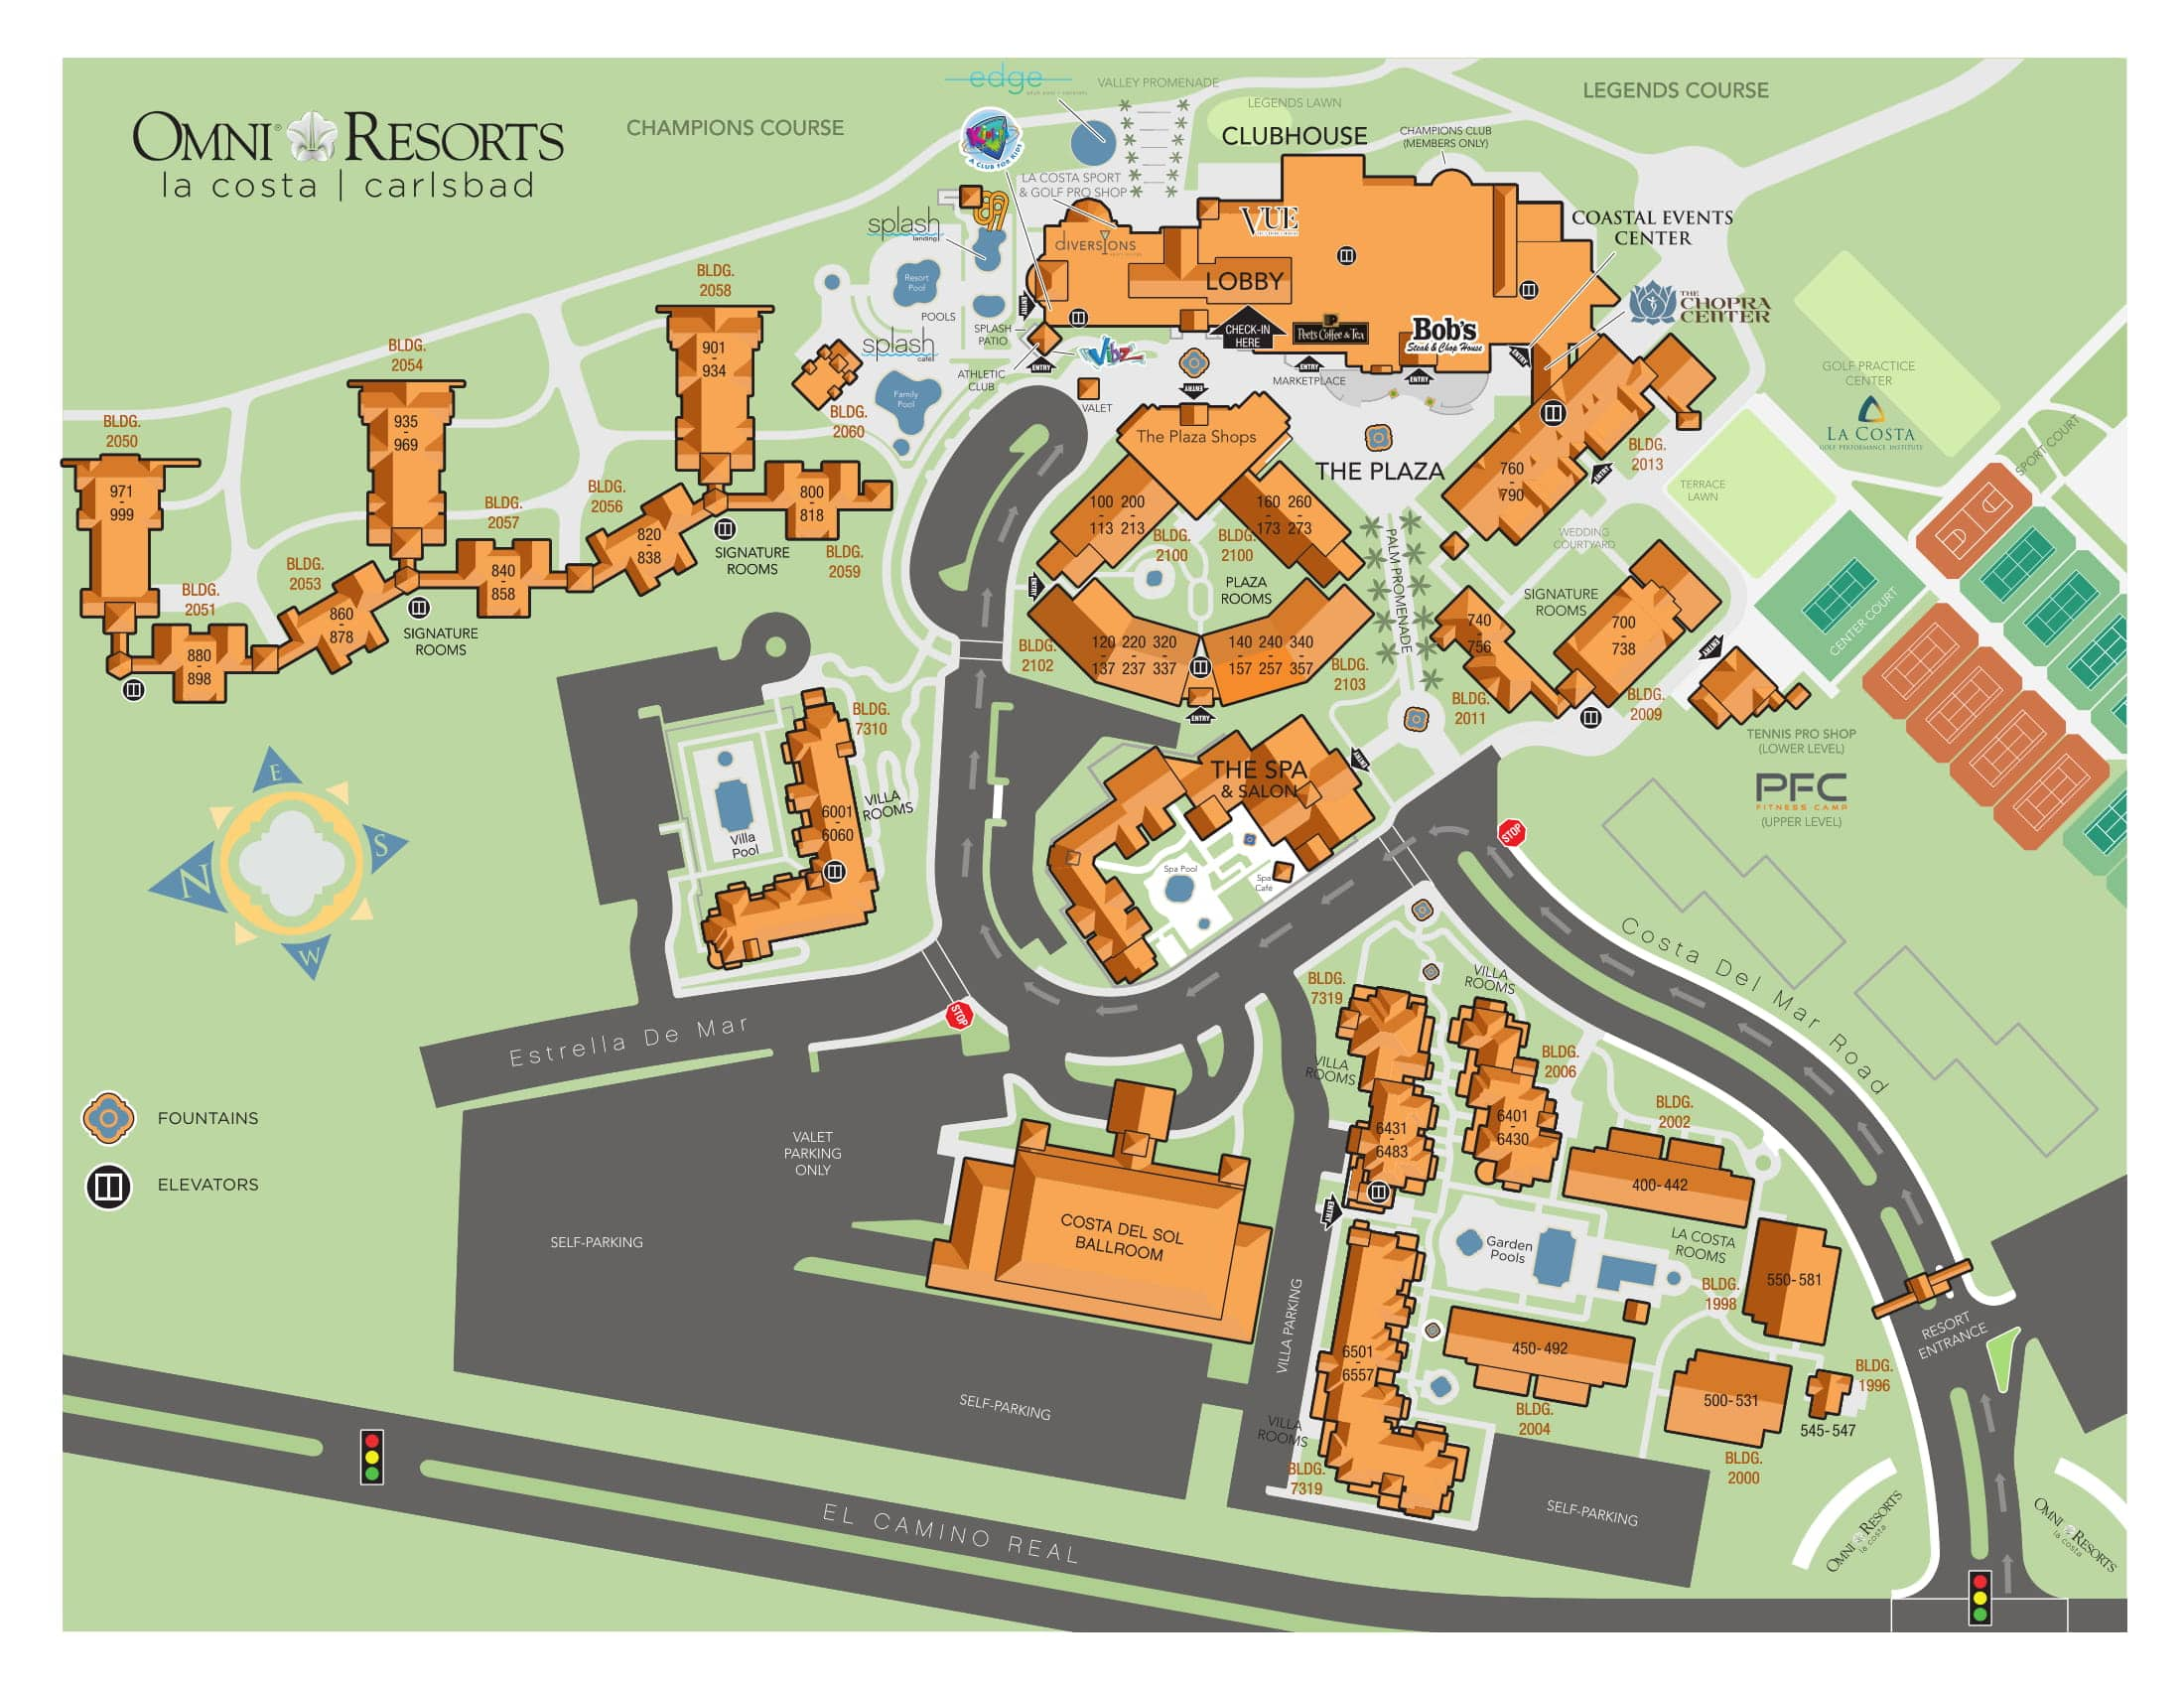 Map of Omni La Costa Resort and Spa